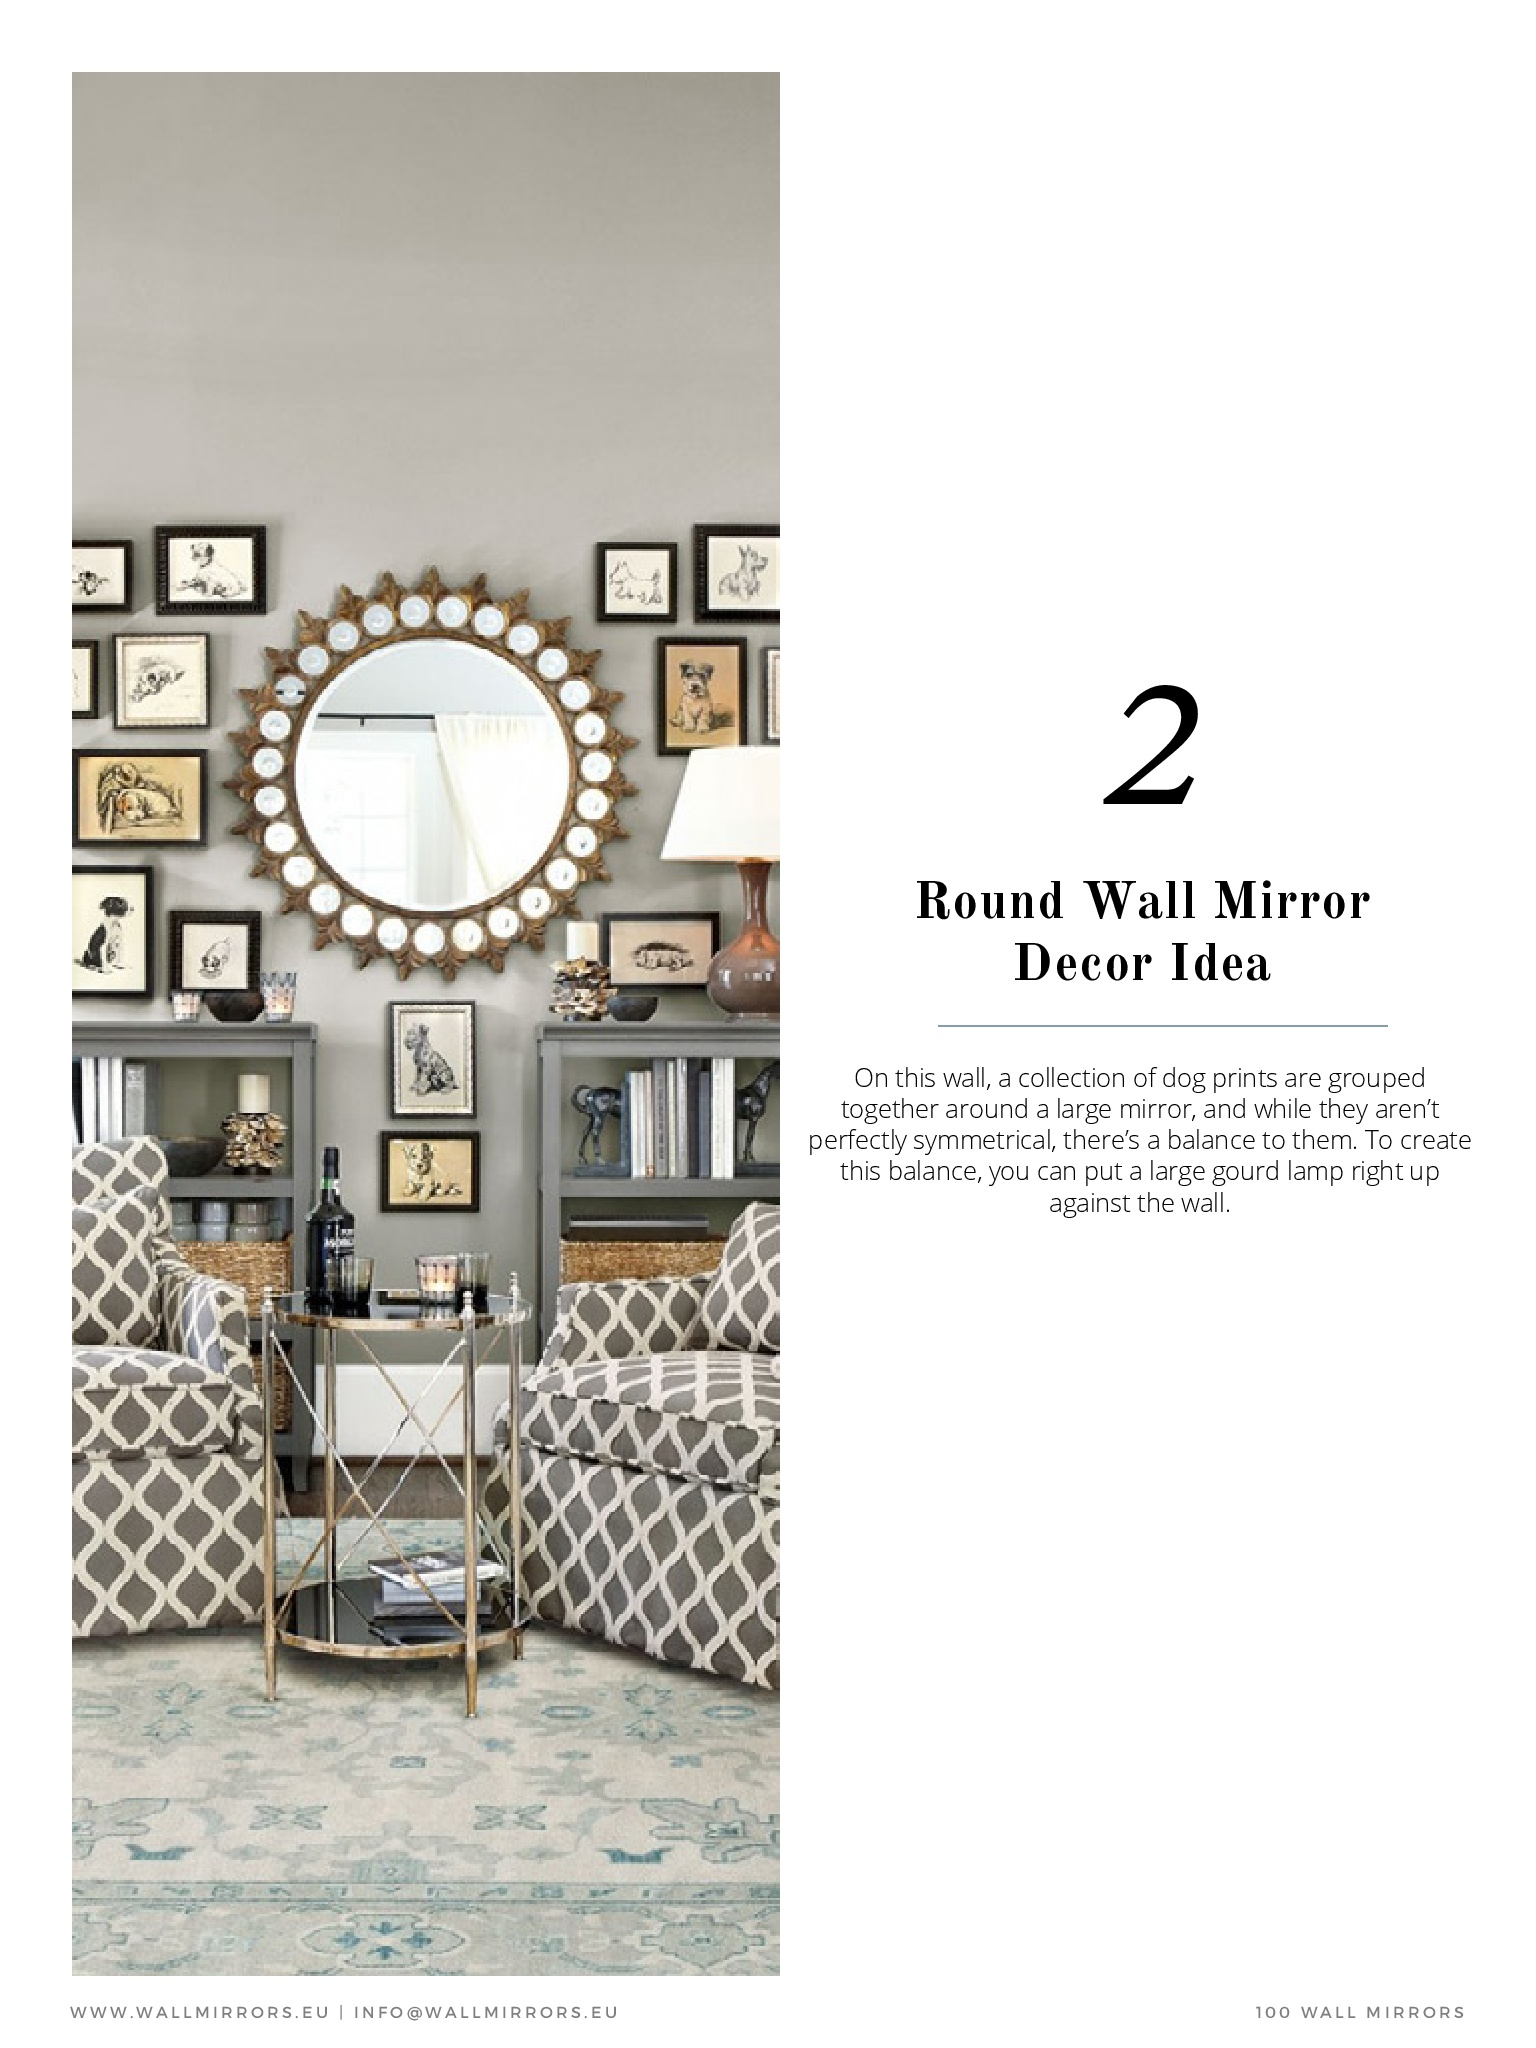 100 Wall Mirror Decorating Ideas For a Modern Interior wall mirror decorating ideas 100 Wall Mirror Decorating Ideas For a Modern Interior Wall Mirror Decorating Ideas For a Modern Interior 3